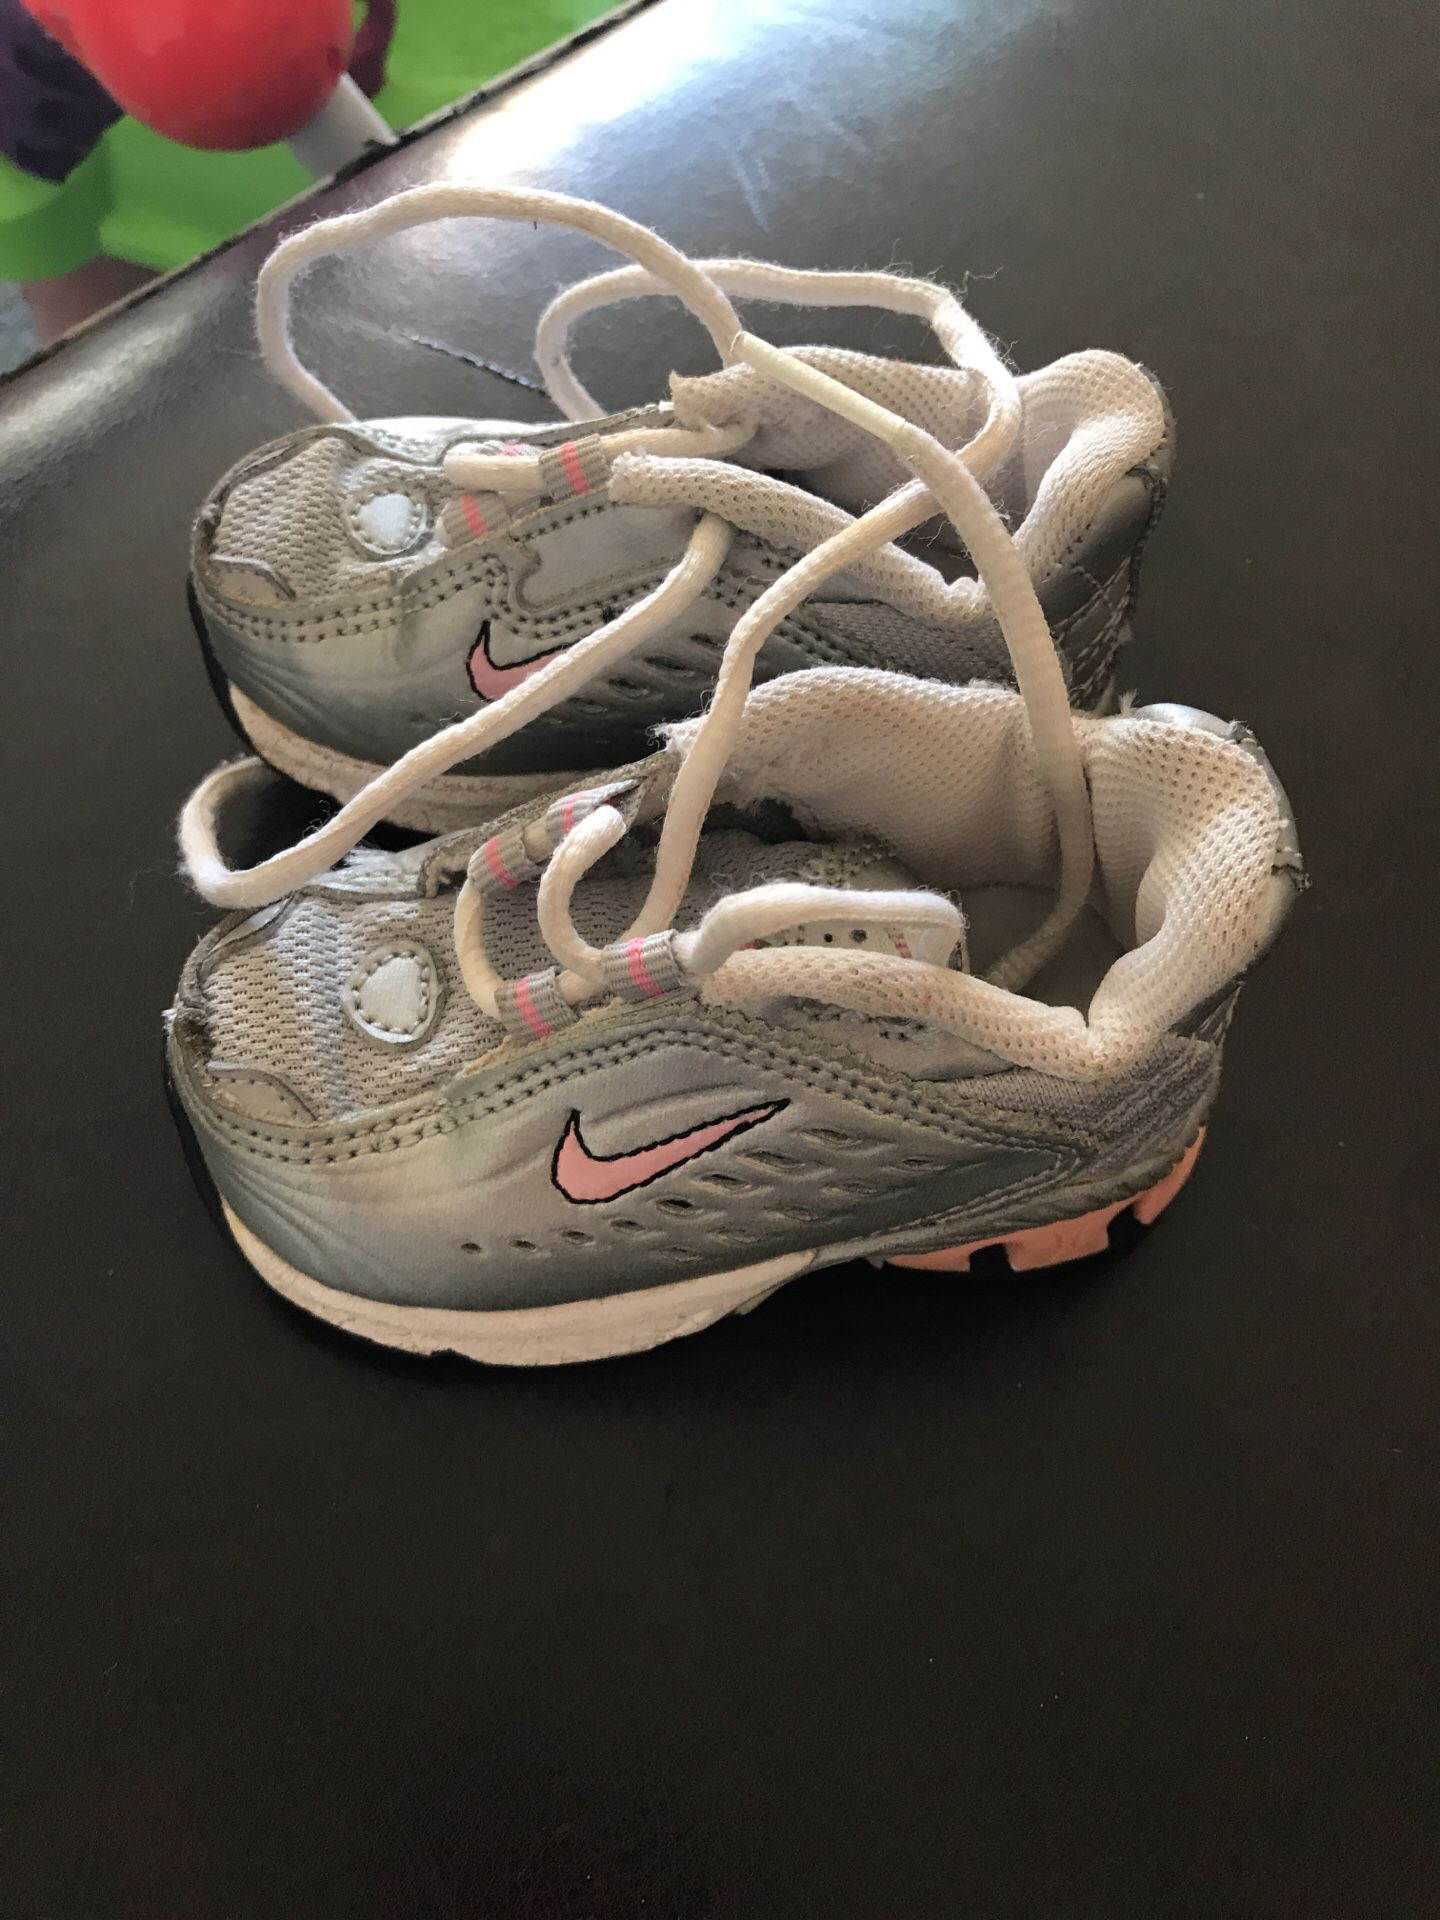 Baby Nikes most likely to fit a 6 to 12 month old girl size 3C